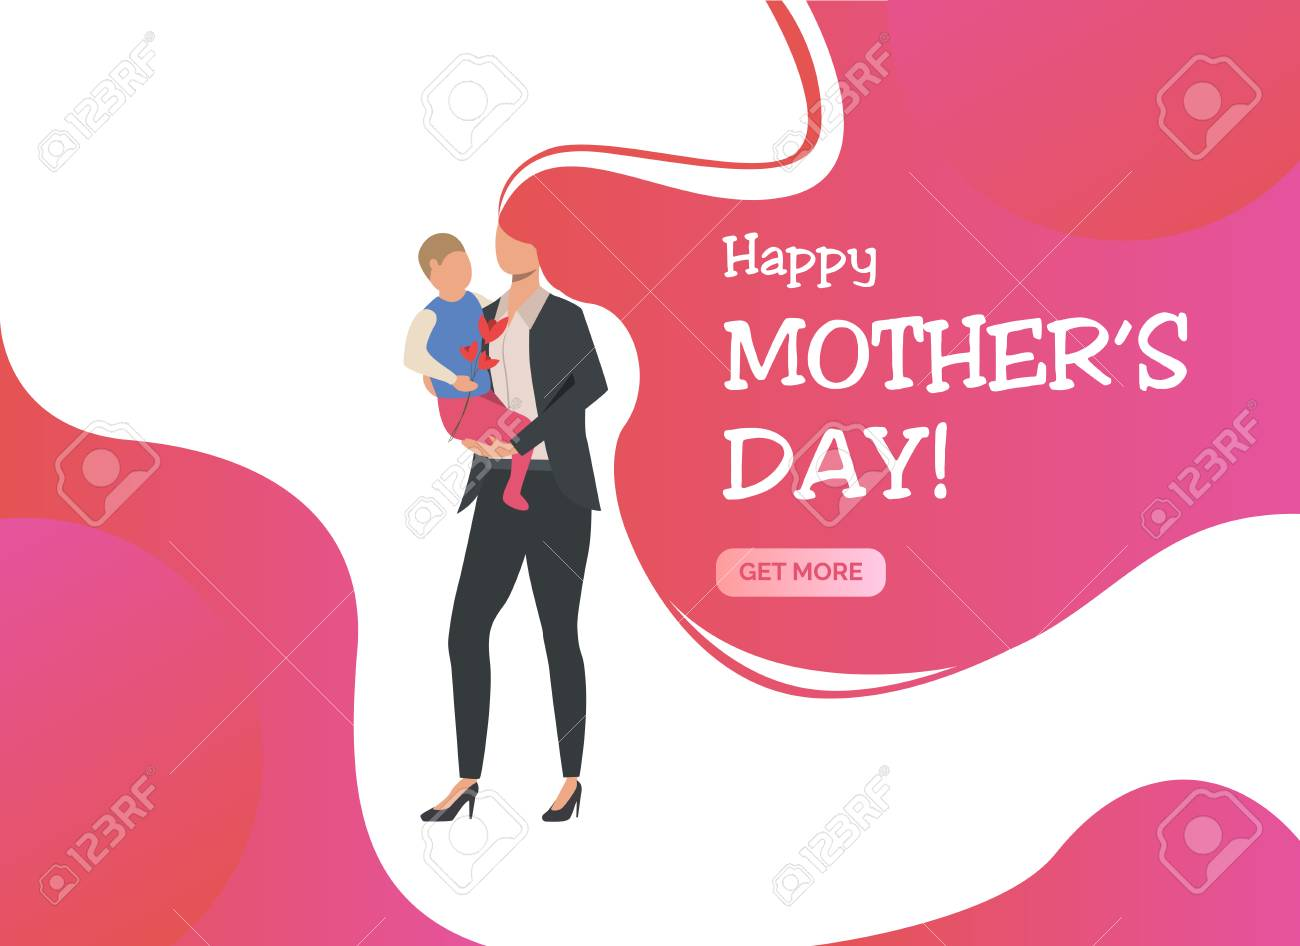 Happy Mothers Day lettering, woman standing and holding child